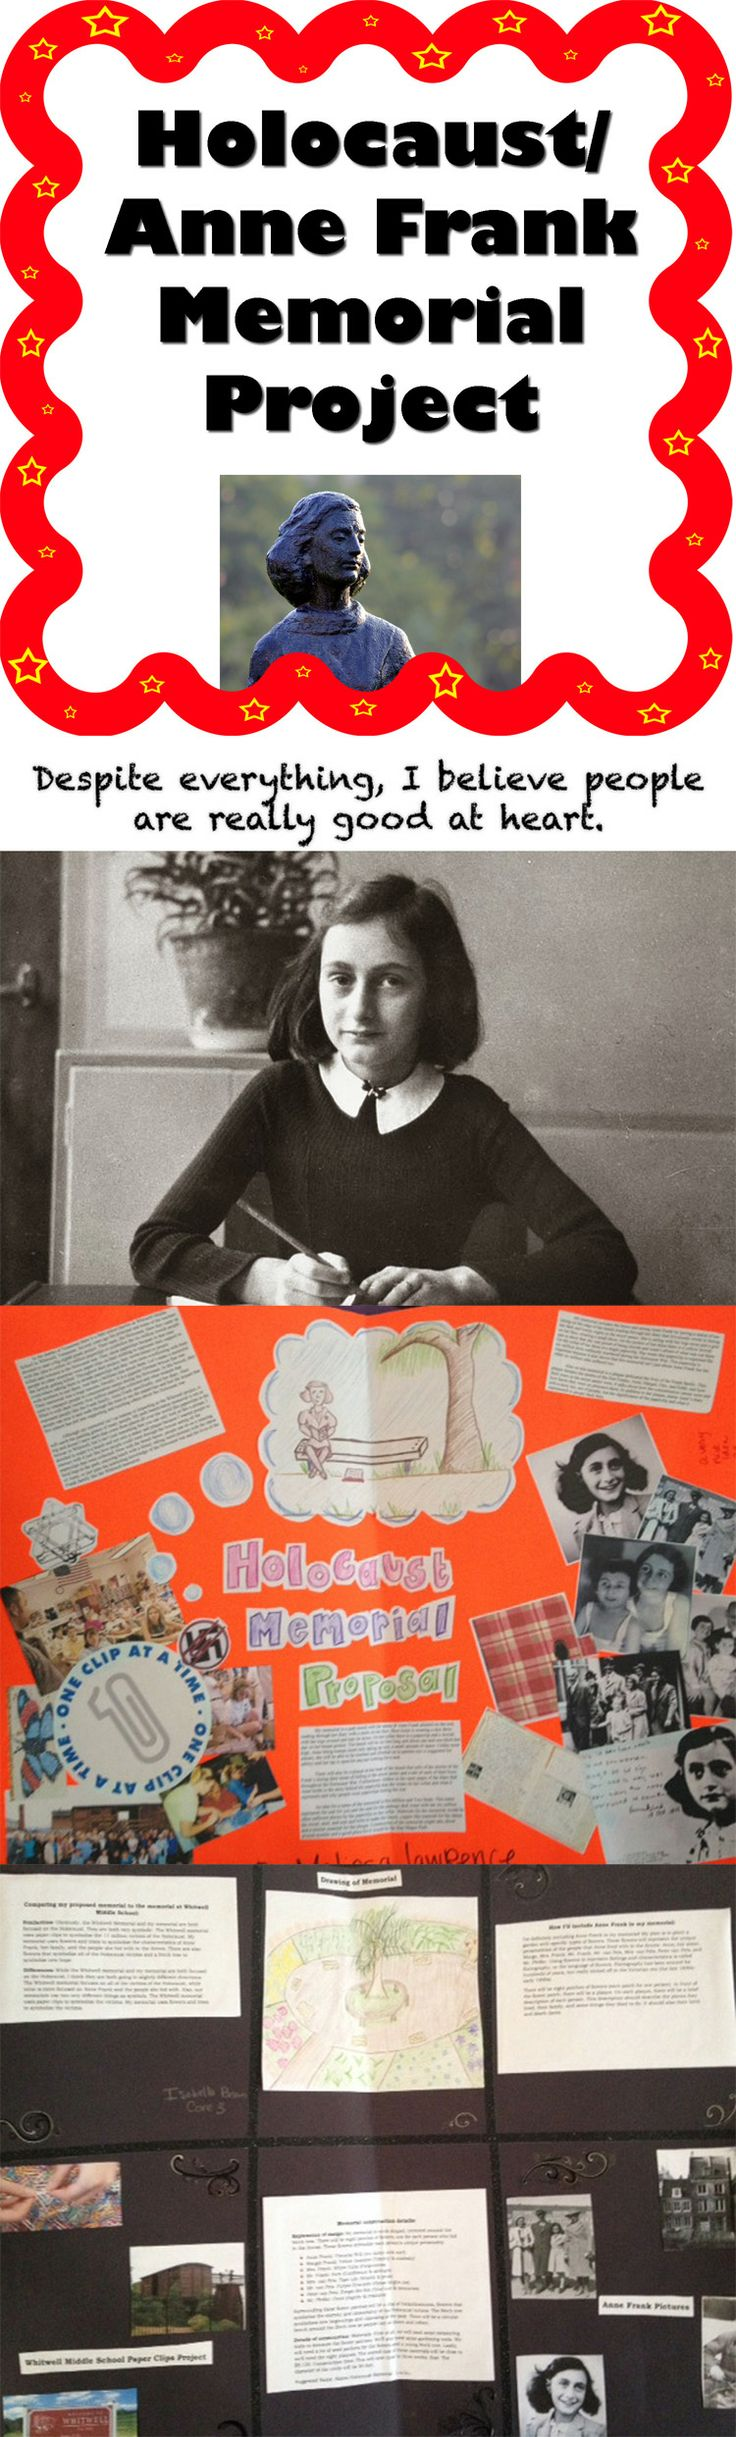 best images about holocaust anne frank holocaust 17 best images about holocaust anne frank holocaust victims anne frank and lesson plans